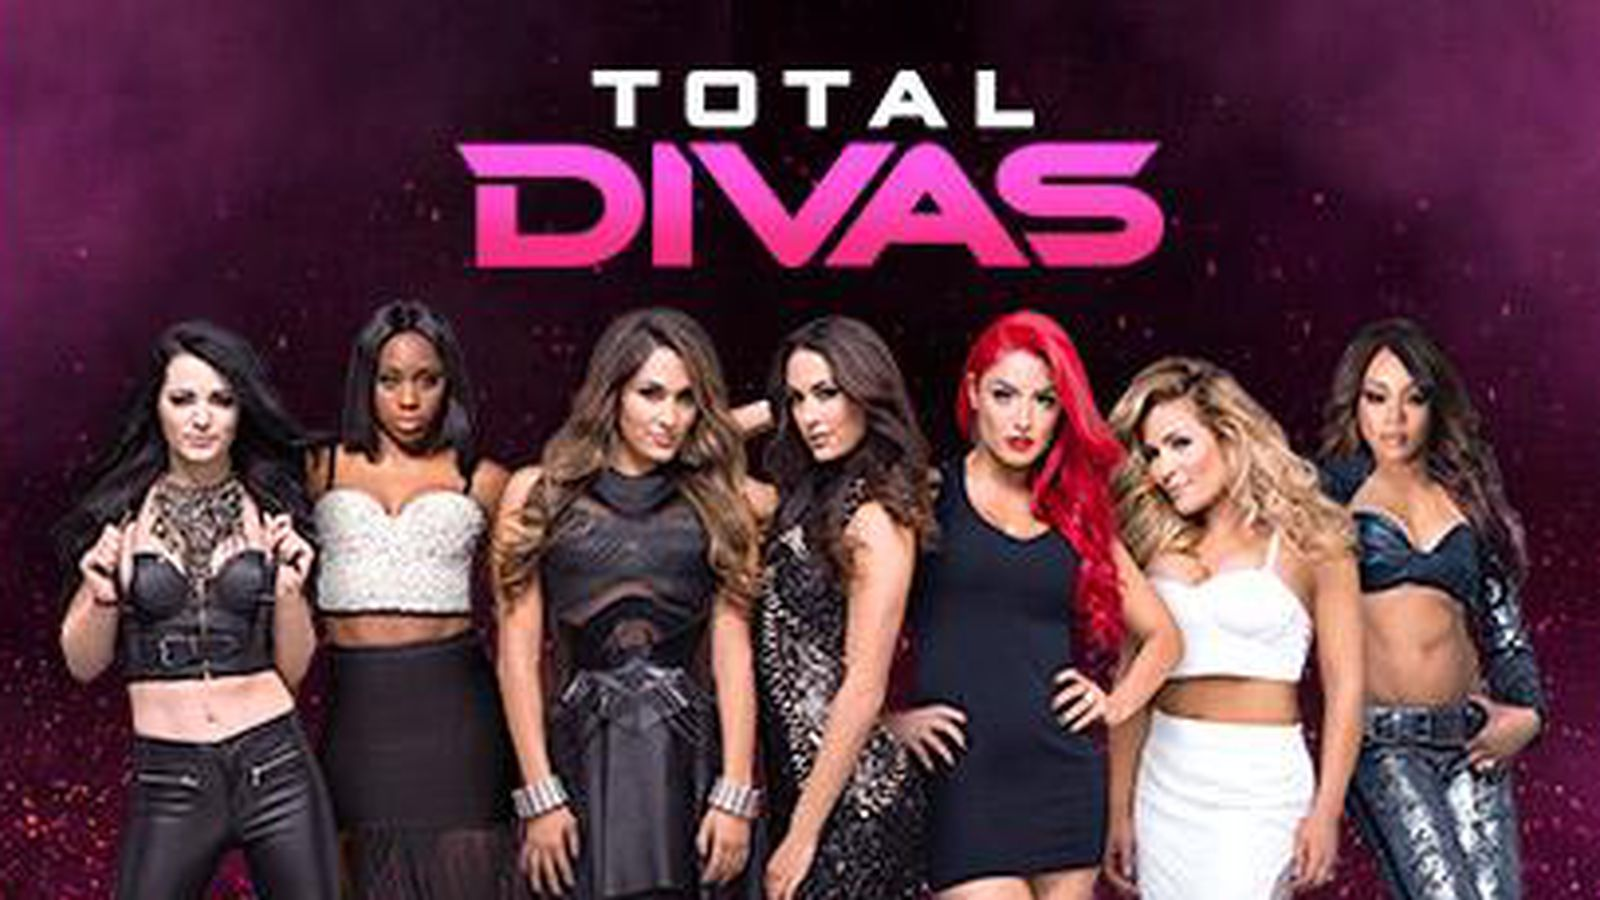 diva wallpapers signs - photo #43